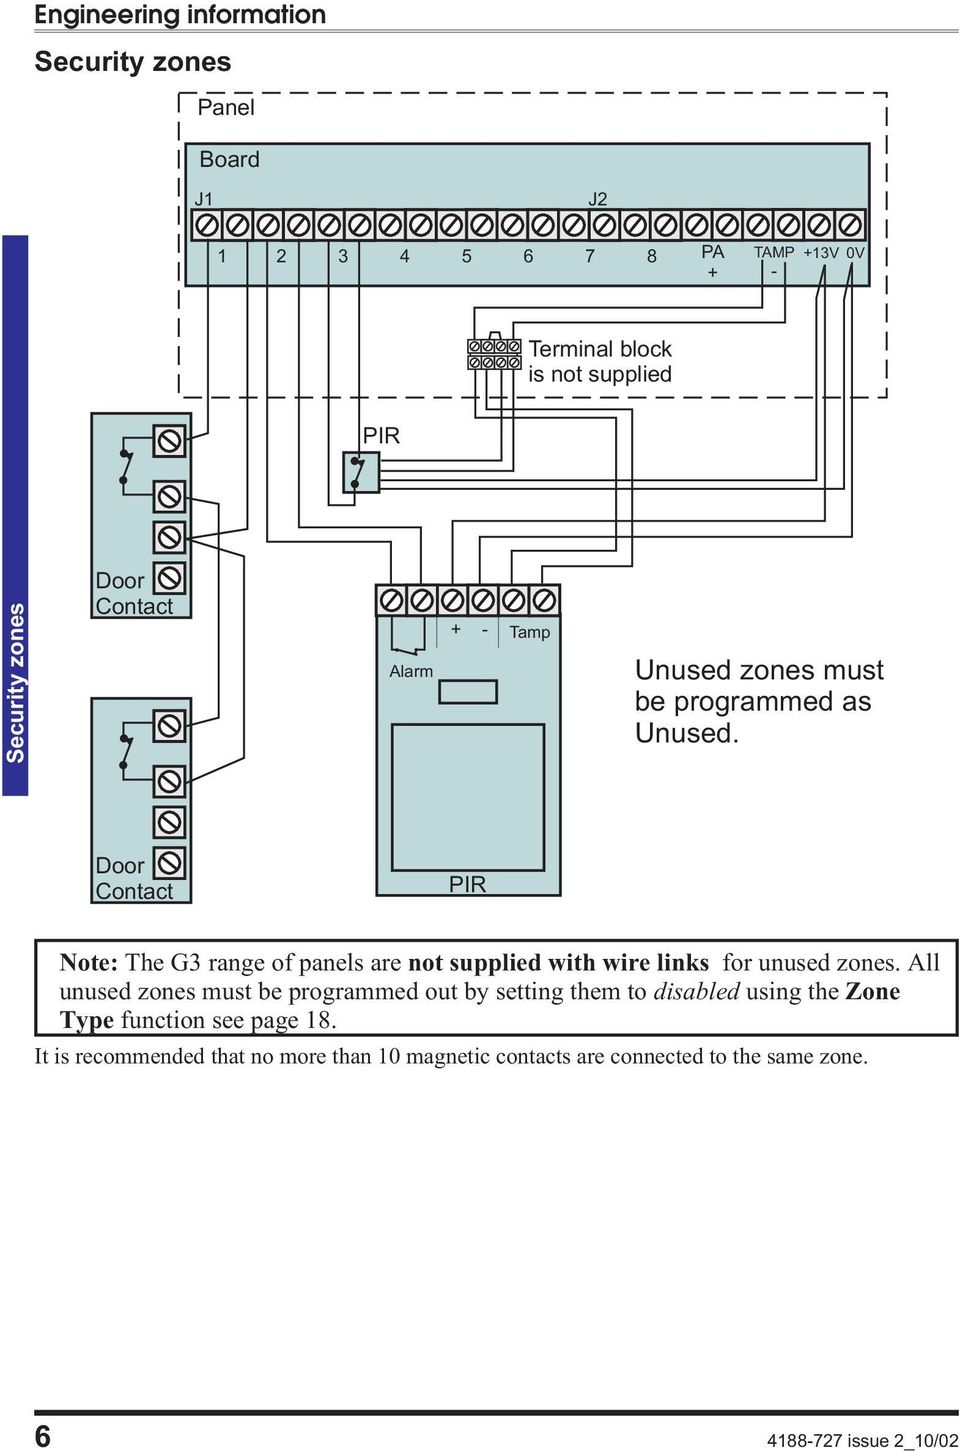 Intruder Alarm System Engineering Information Pdf Veritas Bell Box Wiring Door Contact Pir Note The G Range Of Panels Are Not Supplied With Wire Links